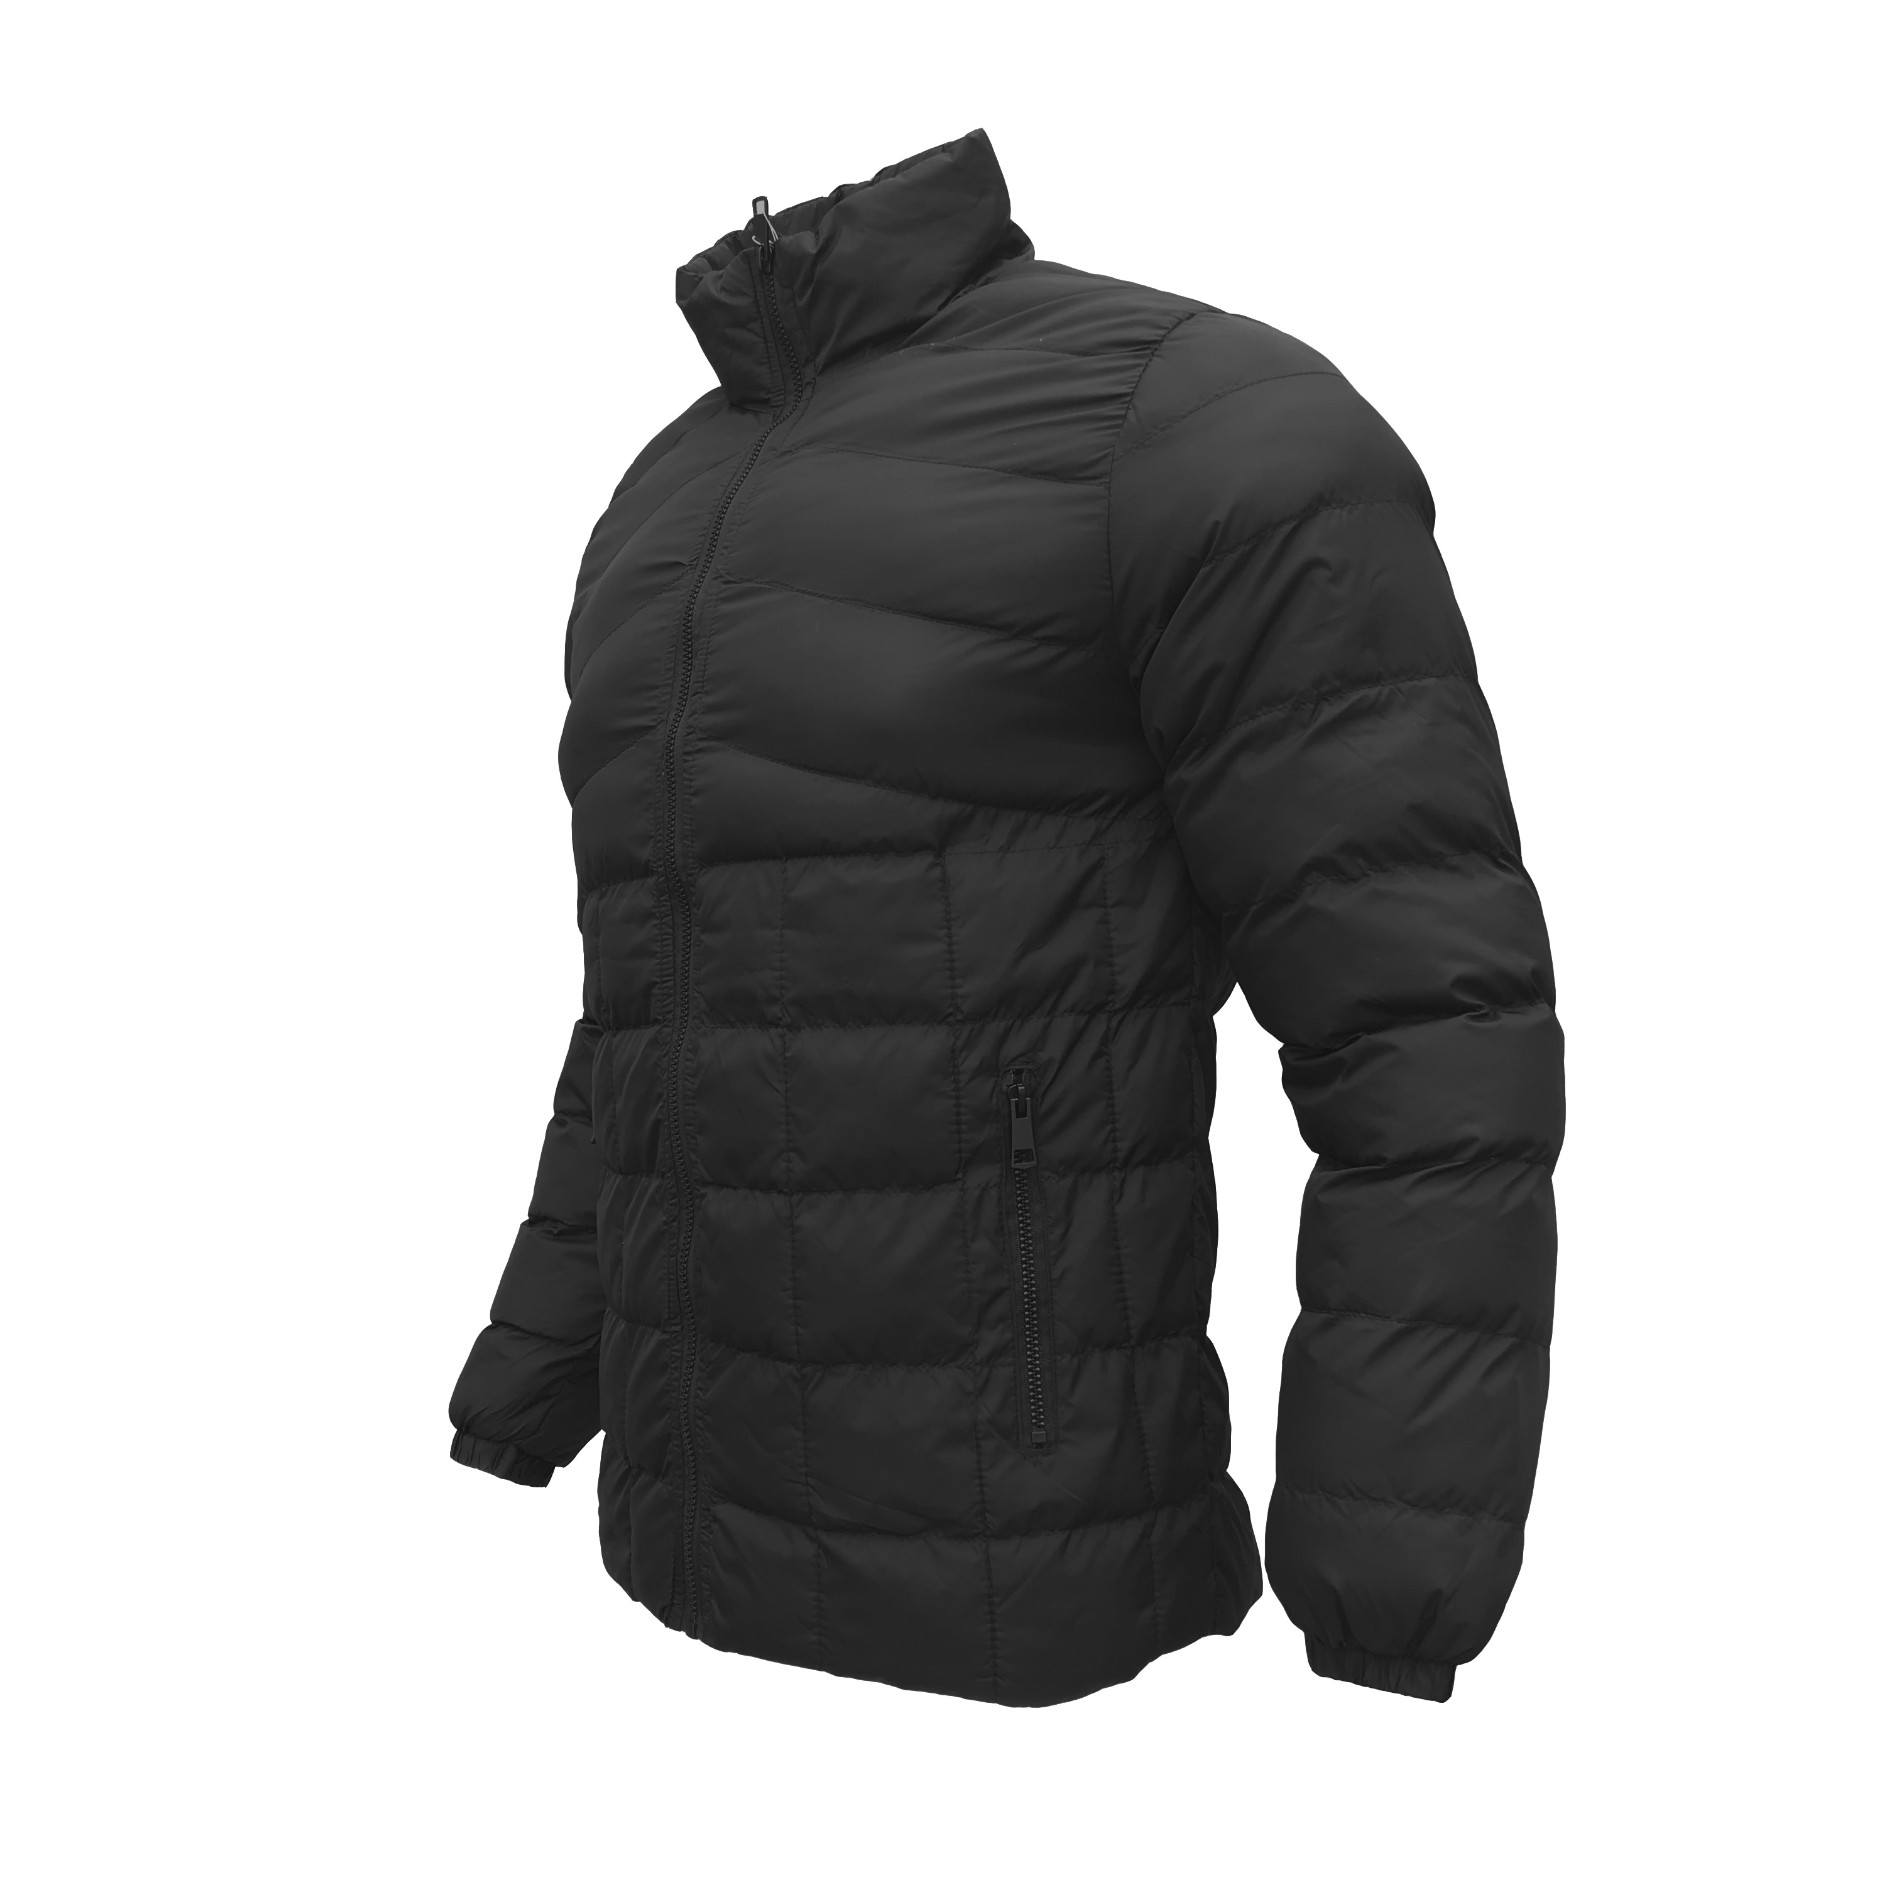 High quality padded Stand Collar Winter Jackets For Men Manufacturers, High quality padded Stand Collar Winter Jackets For Men Factory, Supply High quality padded Stand Collar Winter Jackets For Men